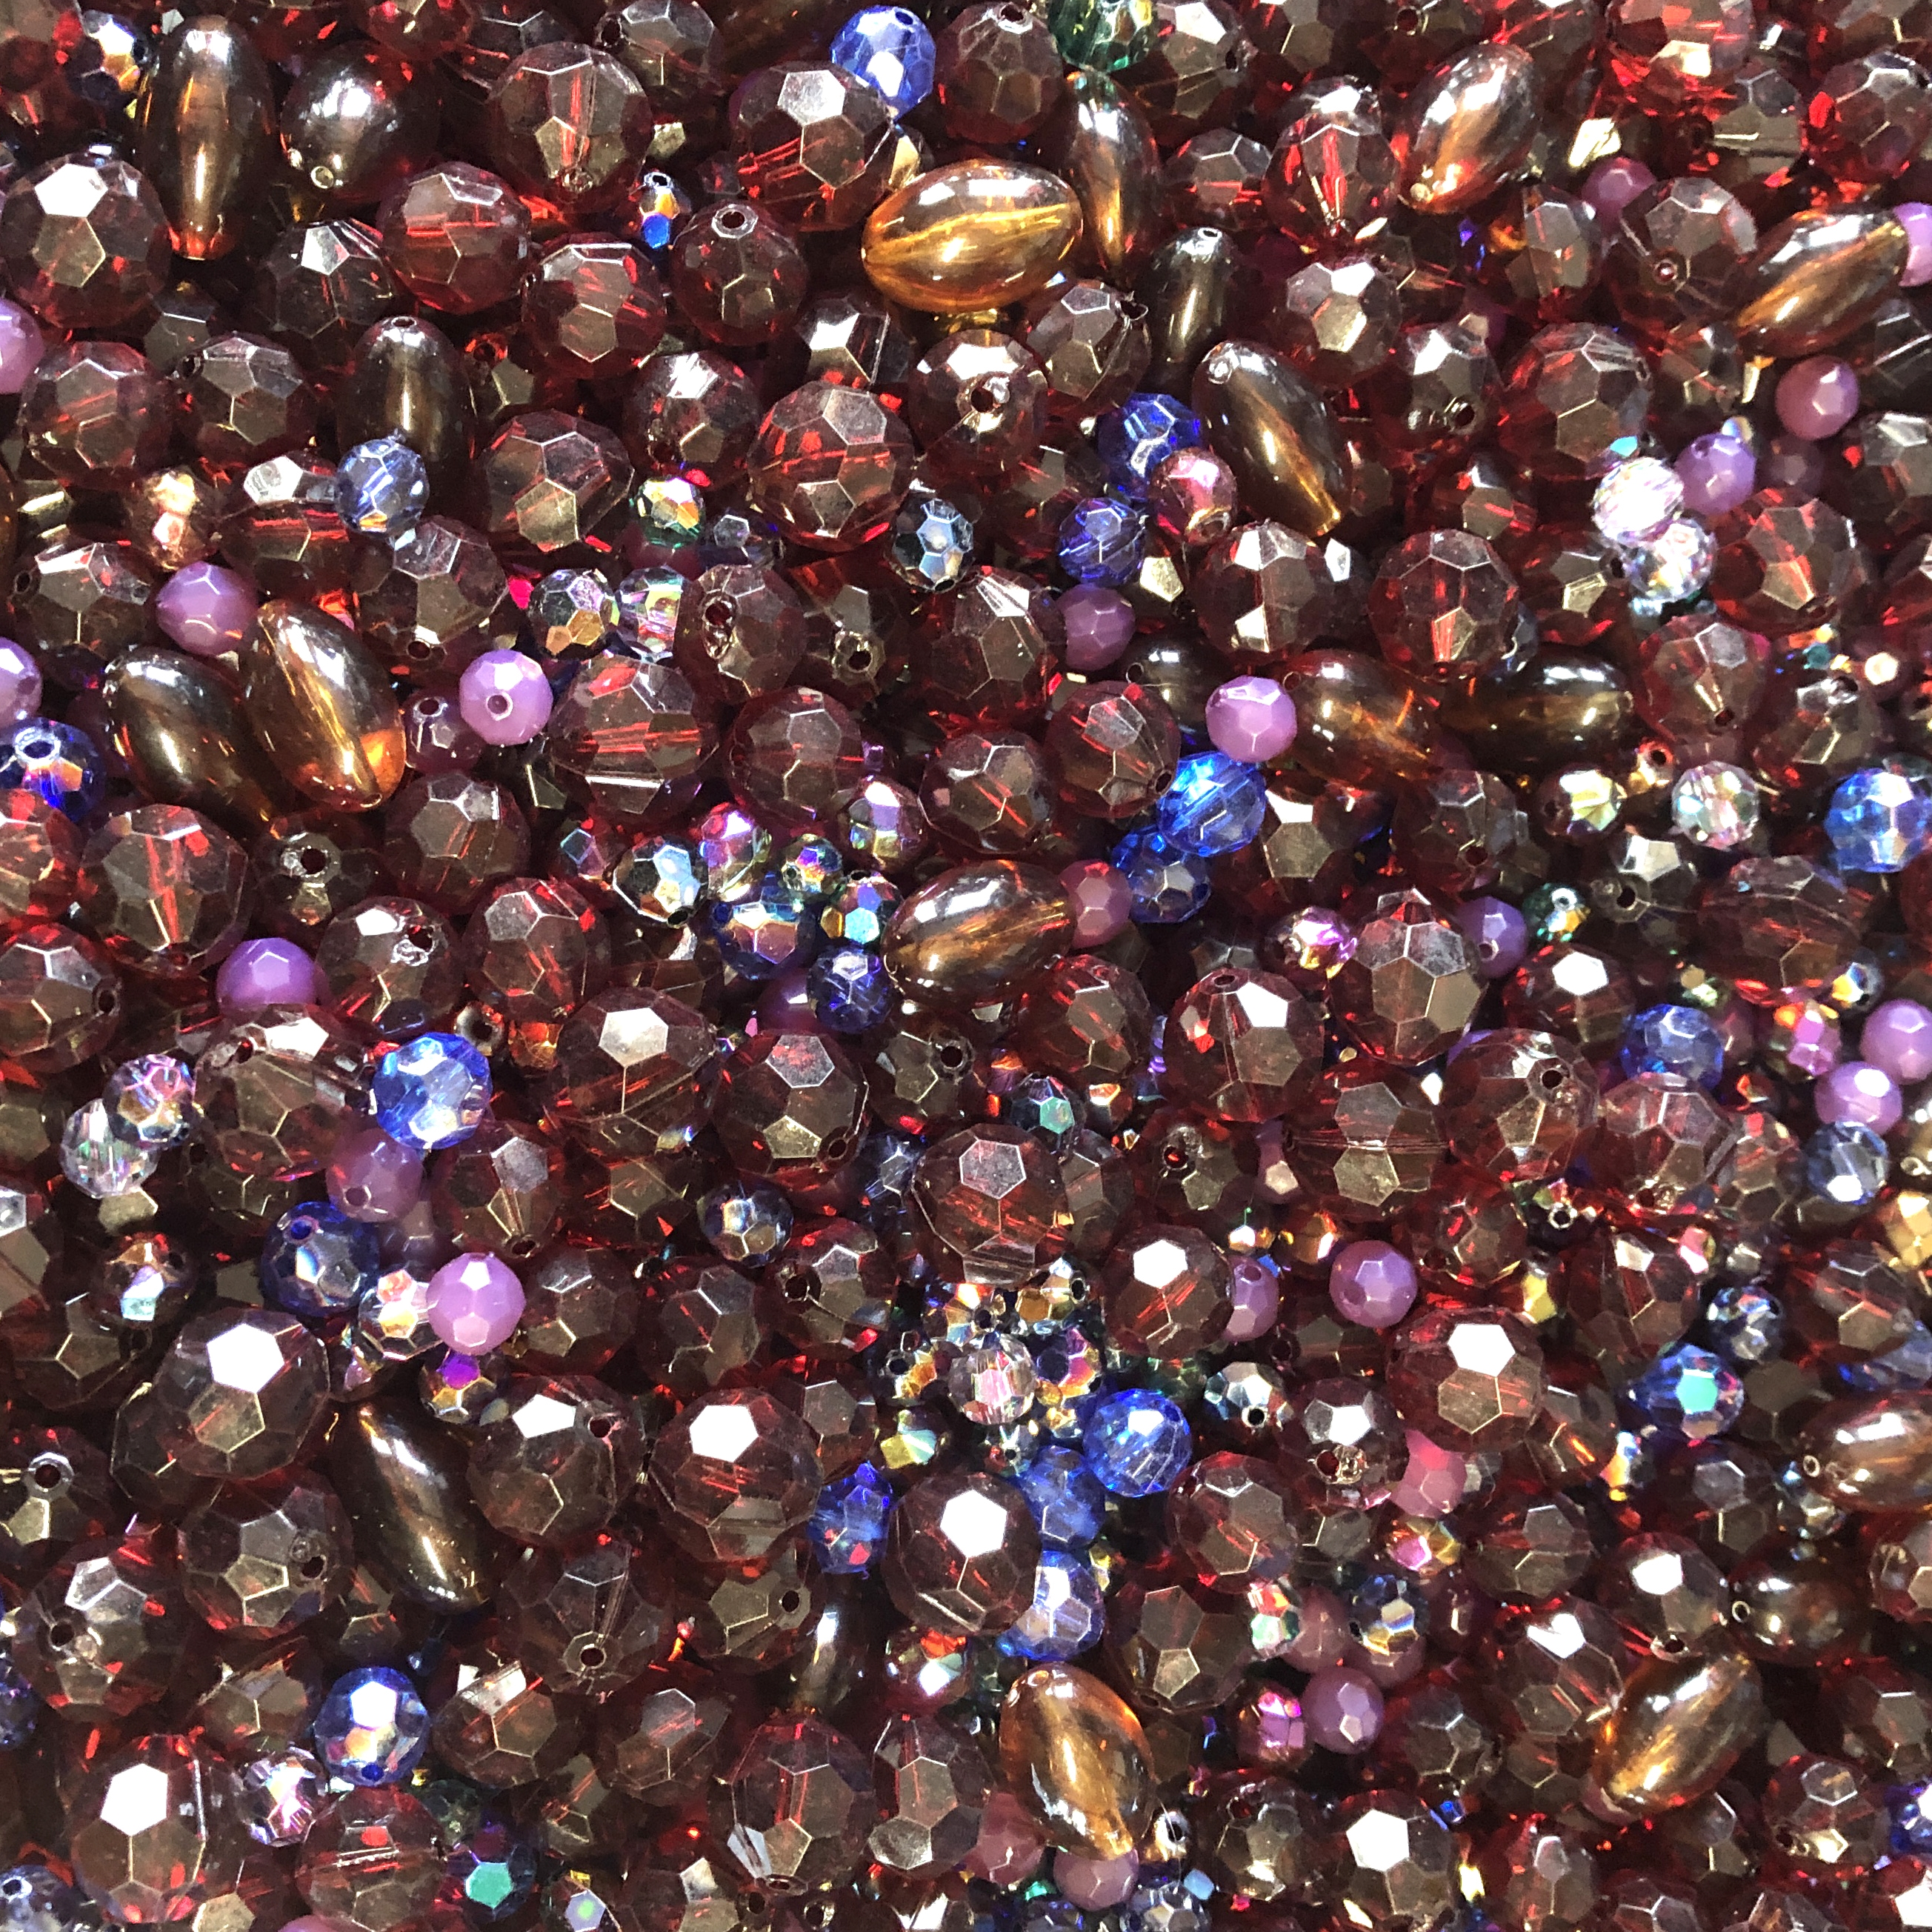 vintage bead mix, rich claret, 09555, acrylic, machine cut beads, ab beads, bead mix, assorted beads, bead assortment, mixed colors of beads, B'sue Boutiques, wine colored beads, burgundy, maroon, beads